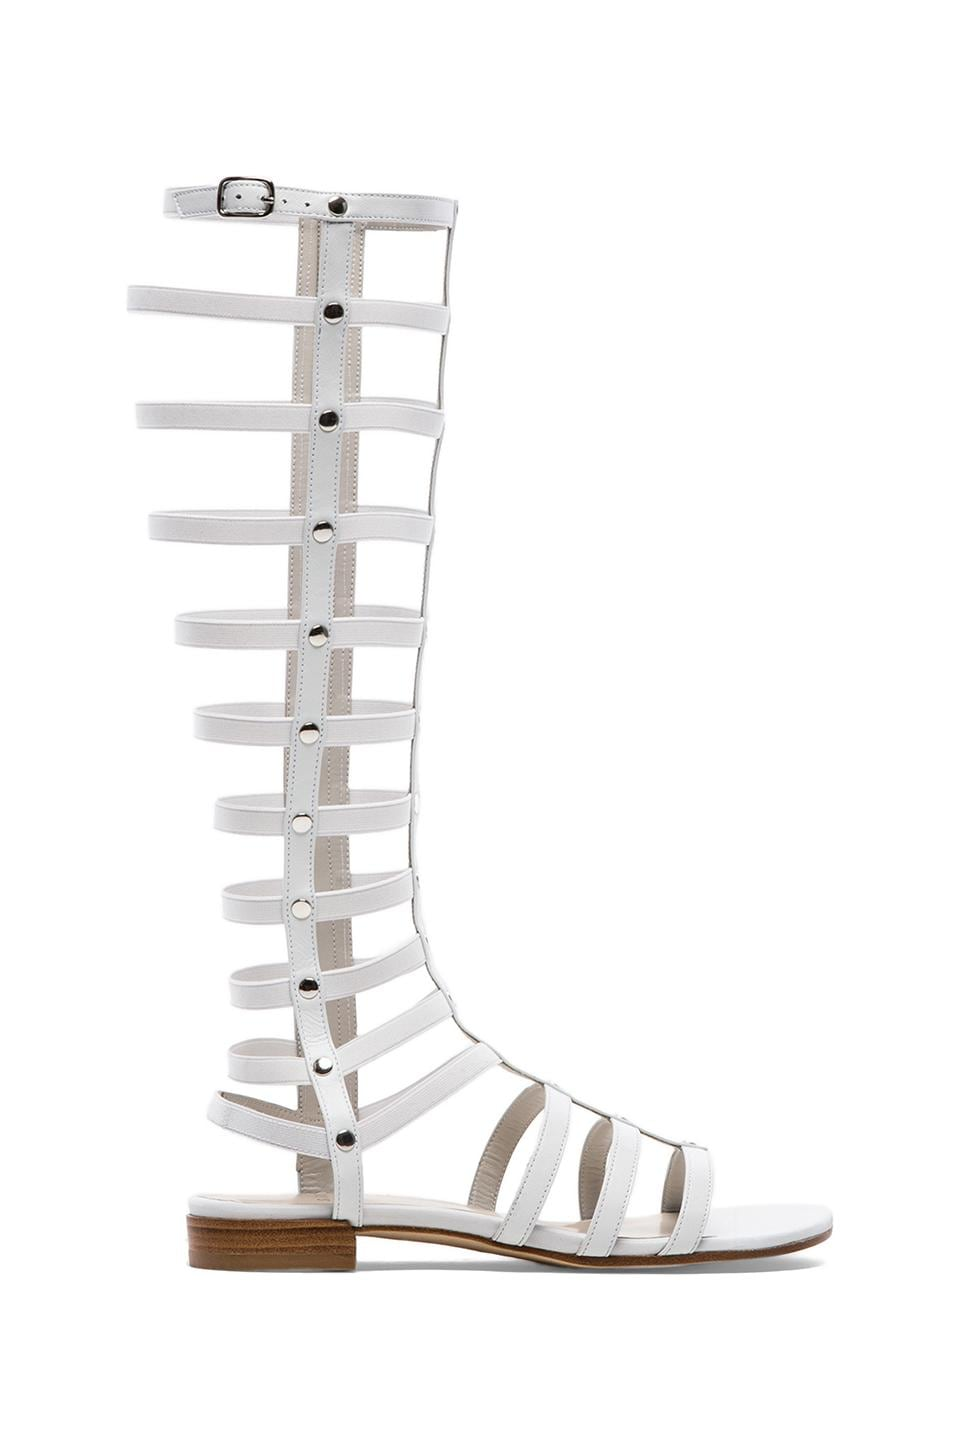 Stuart Weitzman Gladiator in White